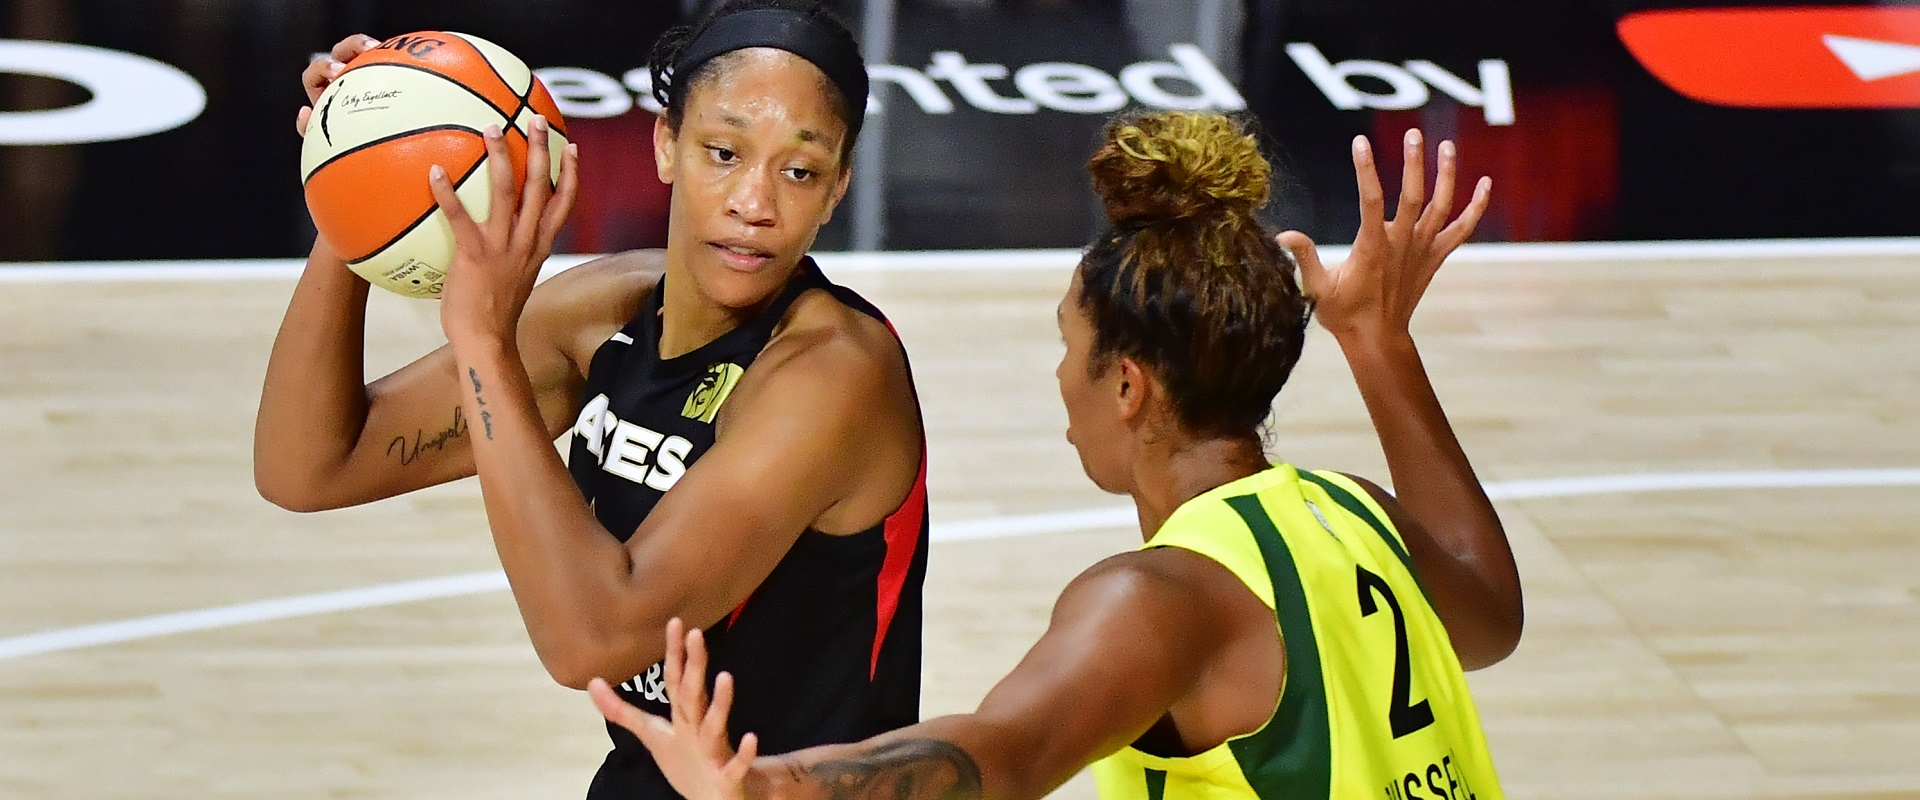 A'JA WILSON IS A LANDMARK OF INSPIRATION FOR NEW GENERATIONS